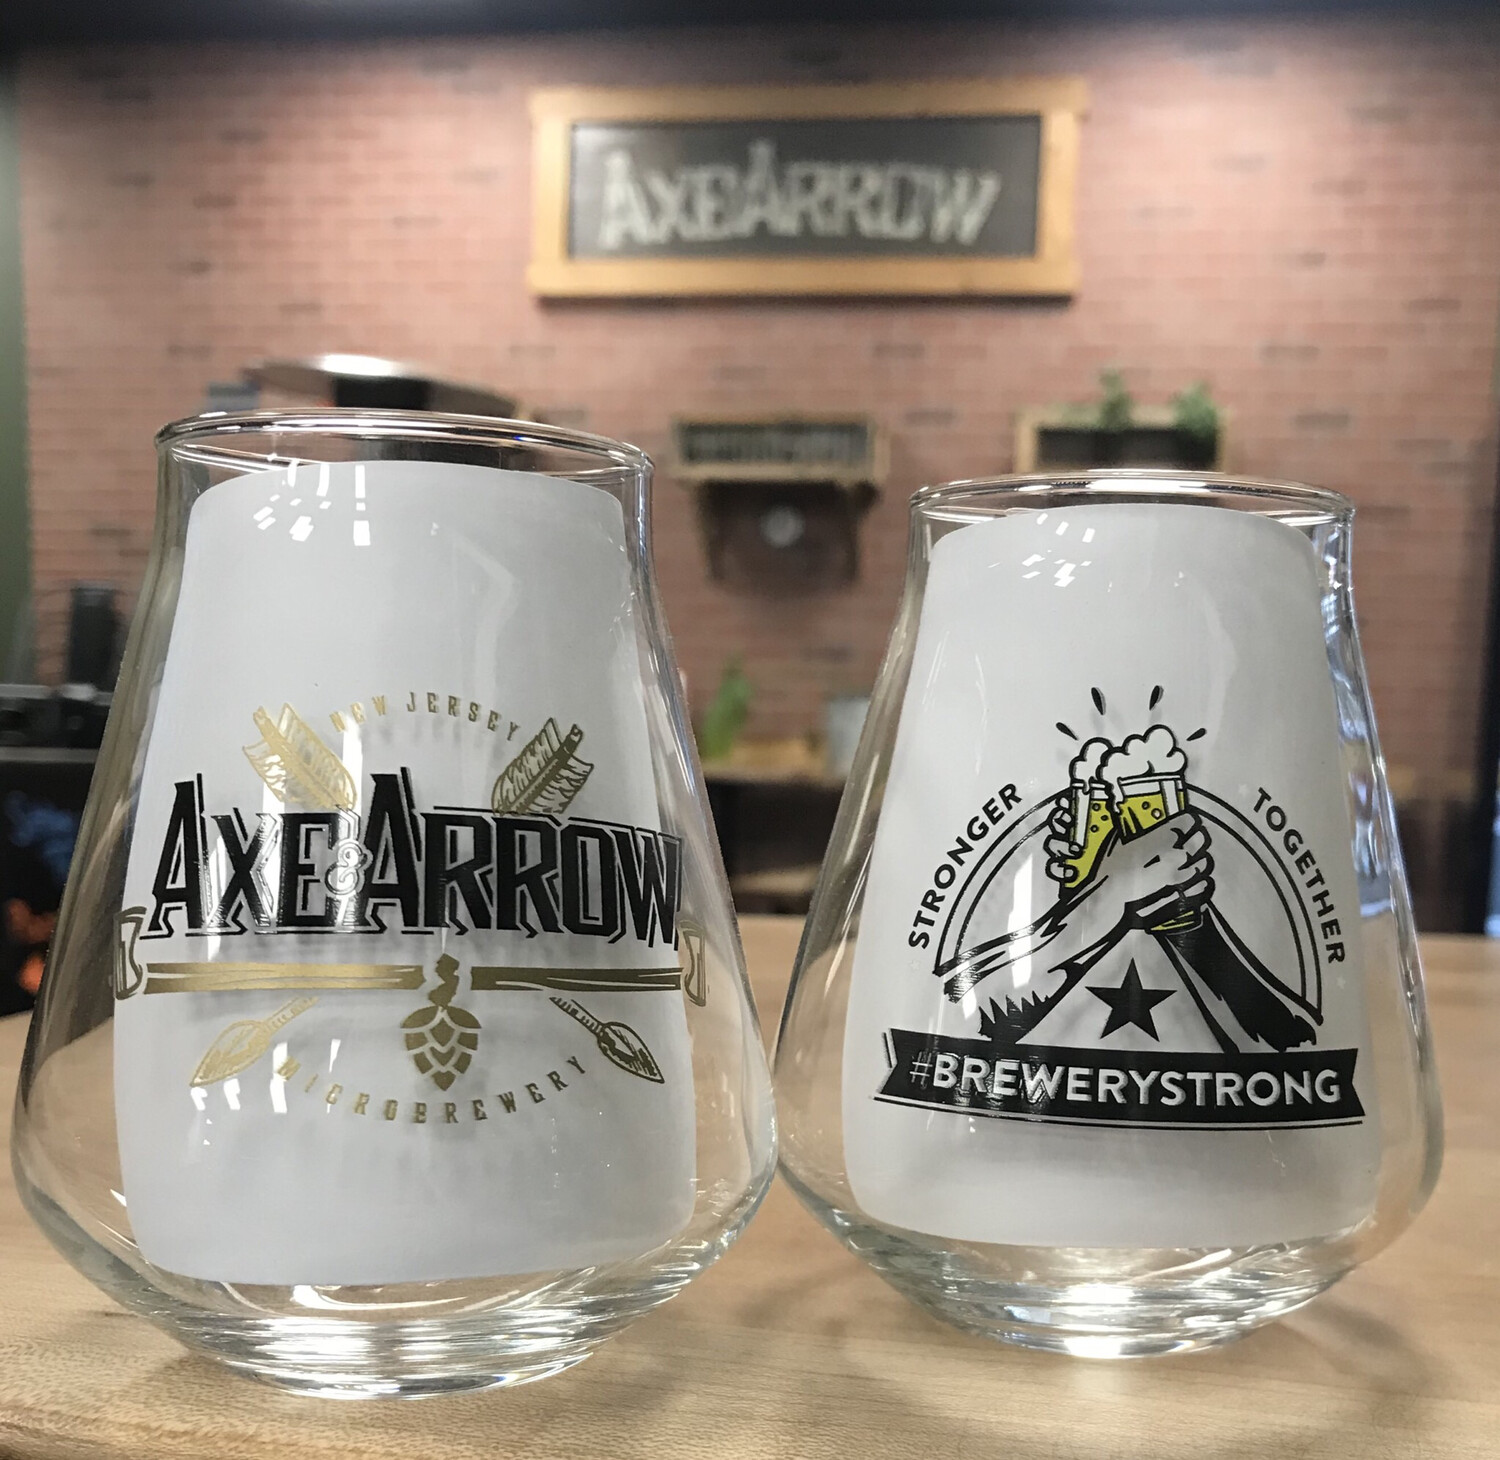 Brewery Strong Glasses